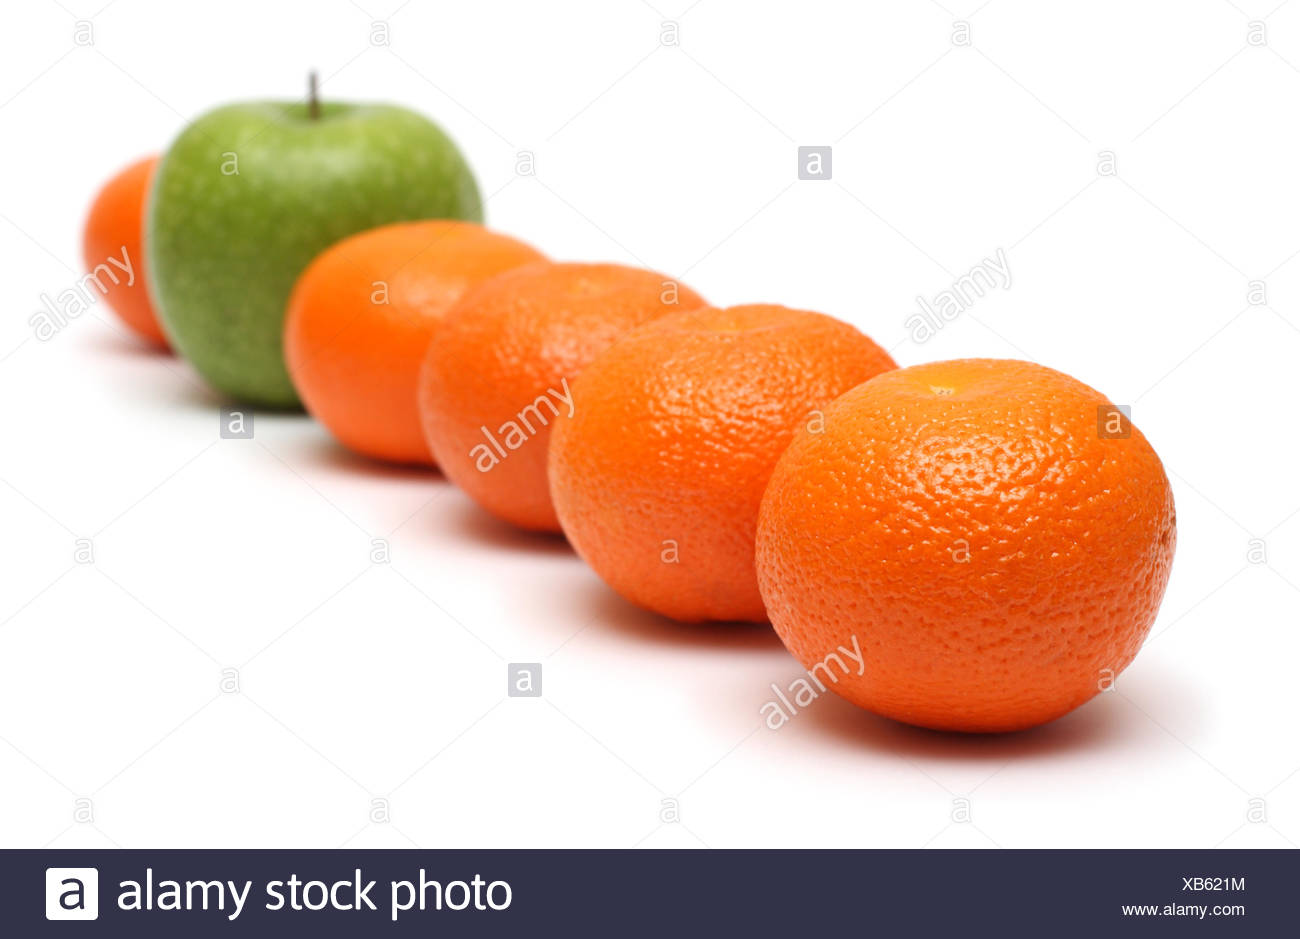 different concepts with mandarins and apple - Stock Image